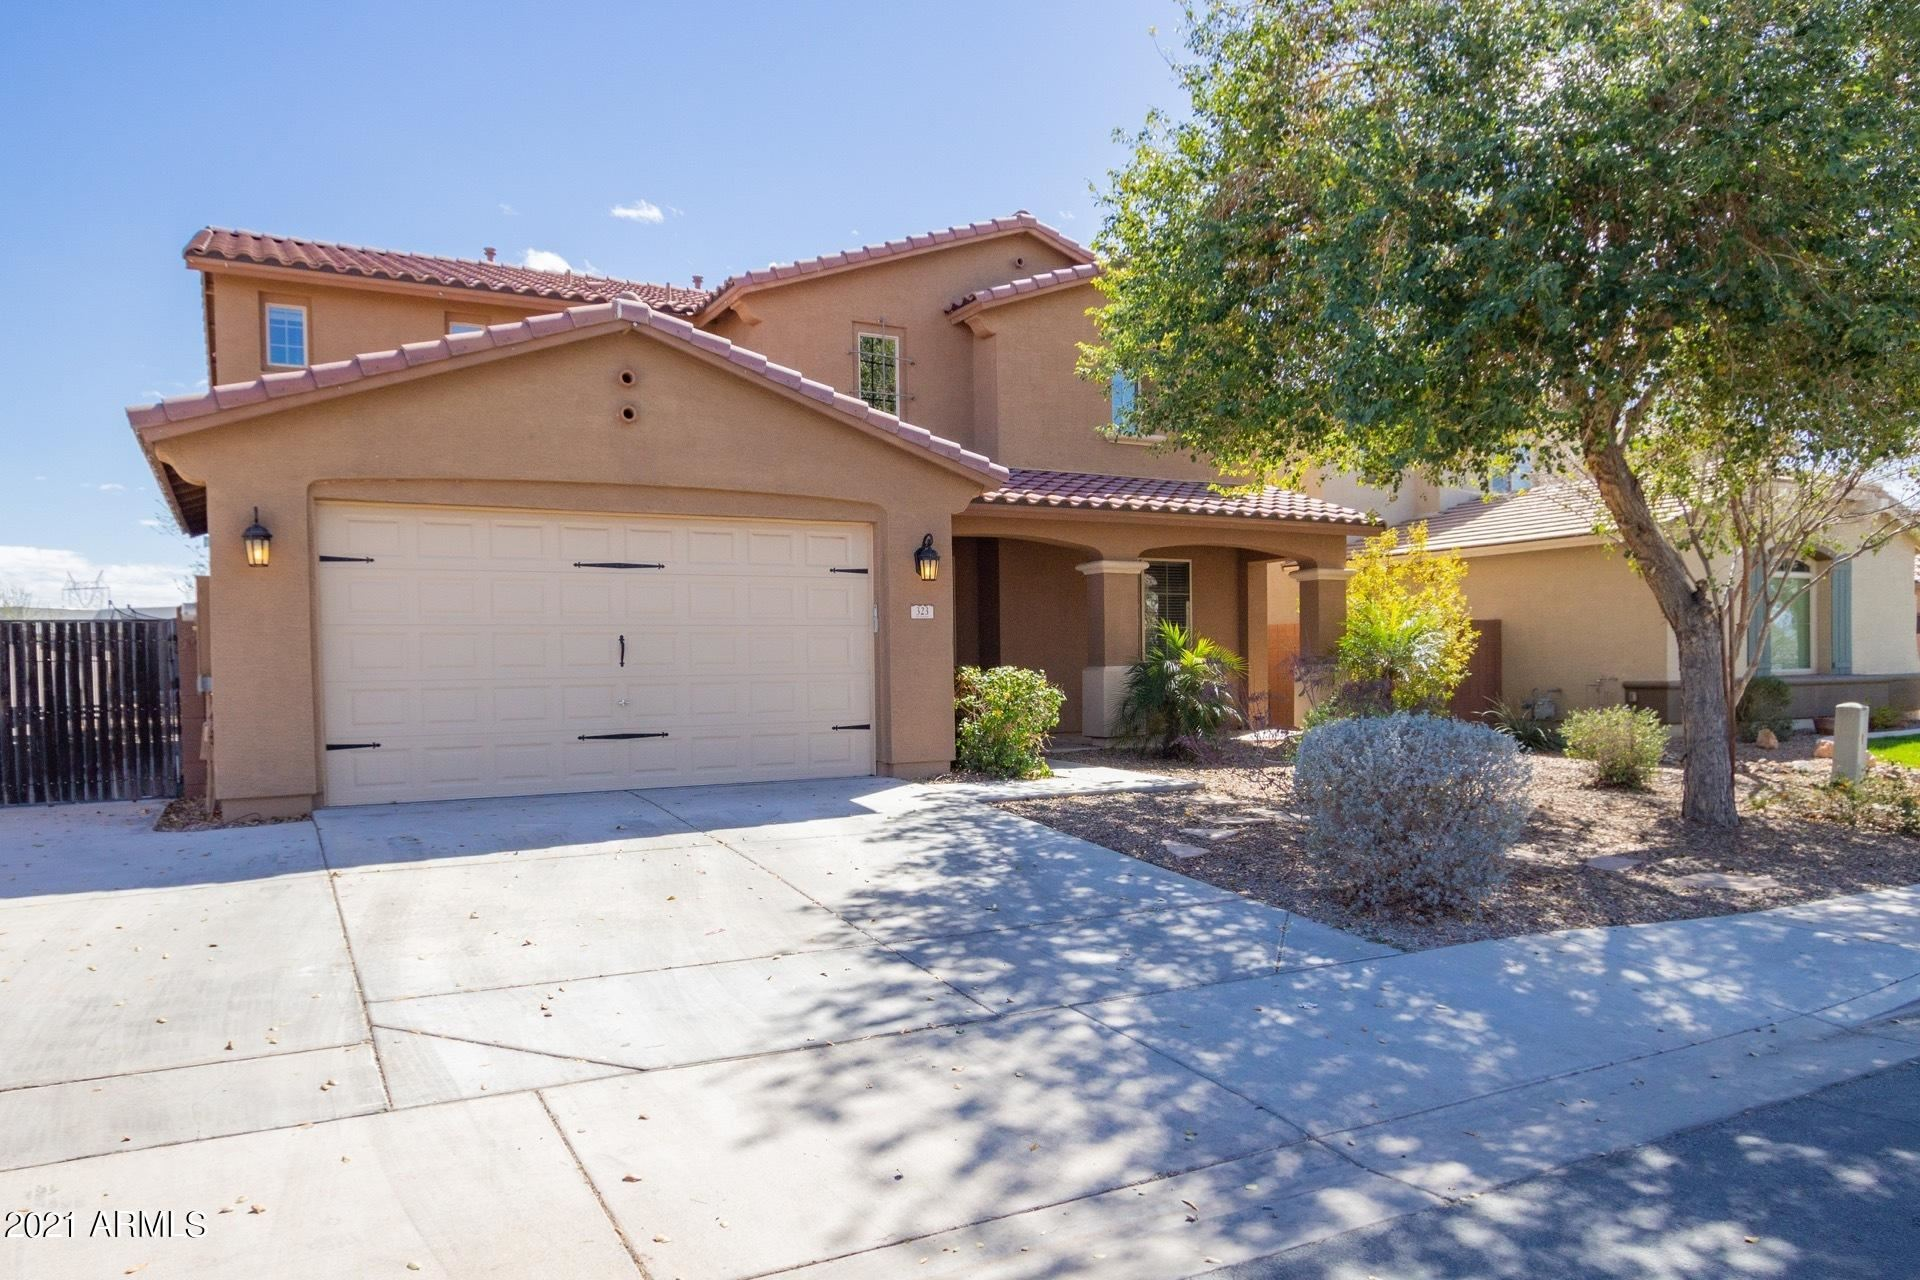 Photo of 323 W YELLOW WOOD Avenue, San Tan Valley, AZ 85140 (MLS # 6200673)